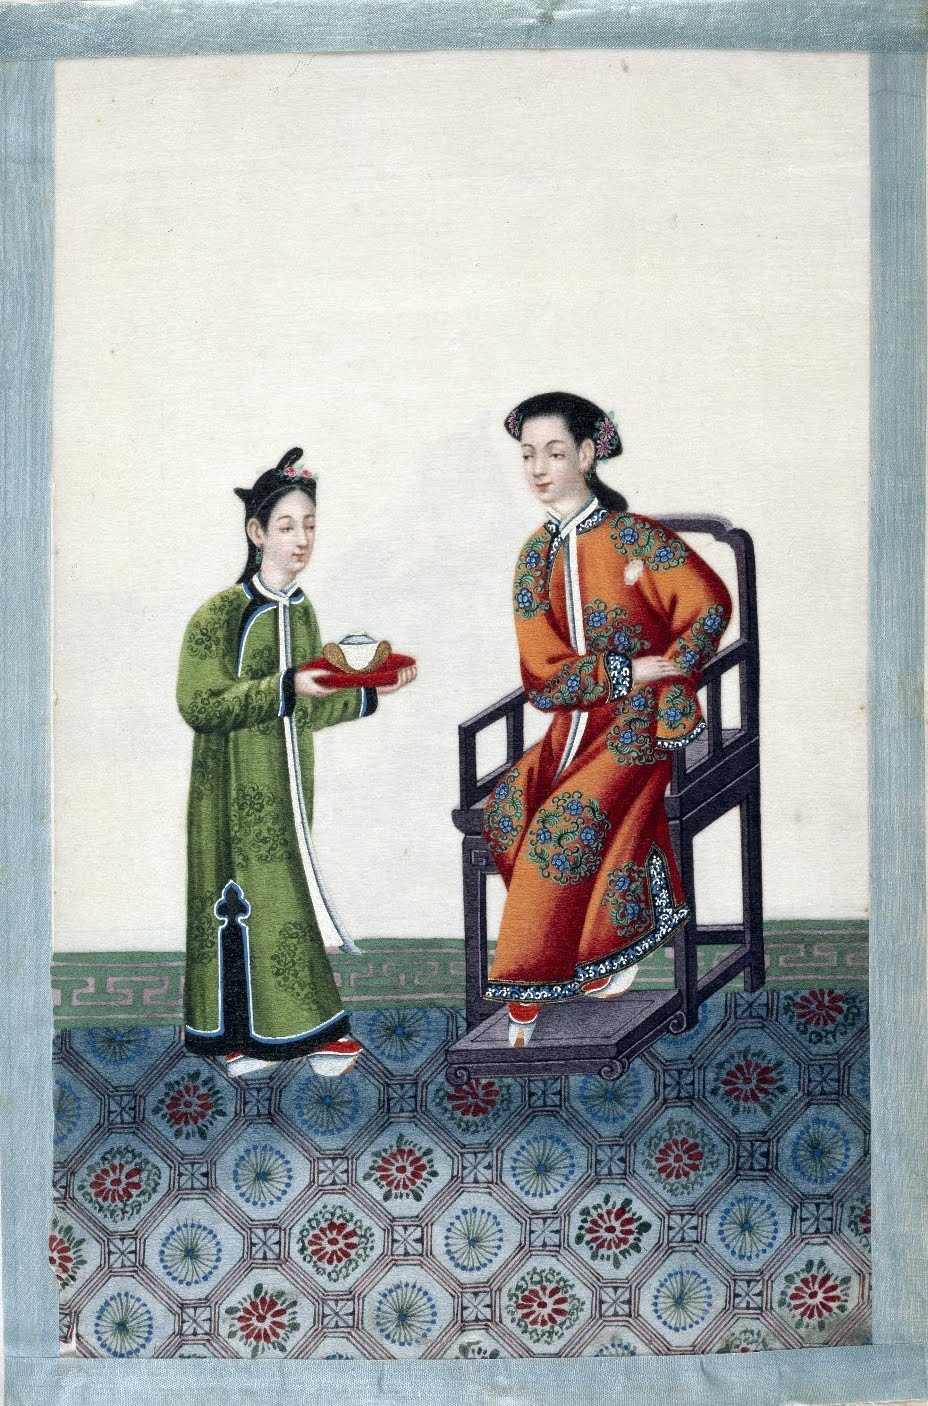 nobleman + servant in China